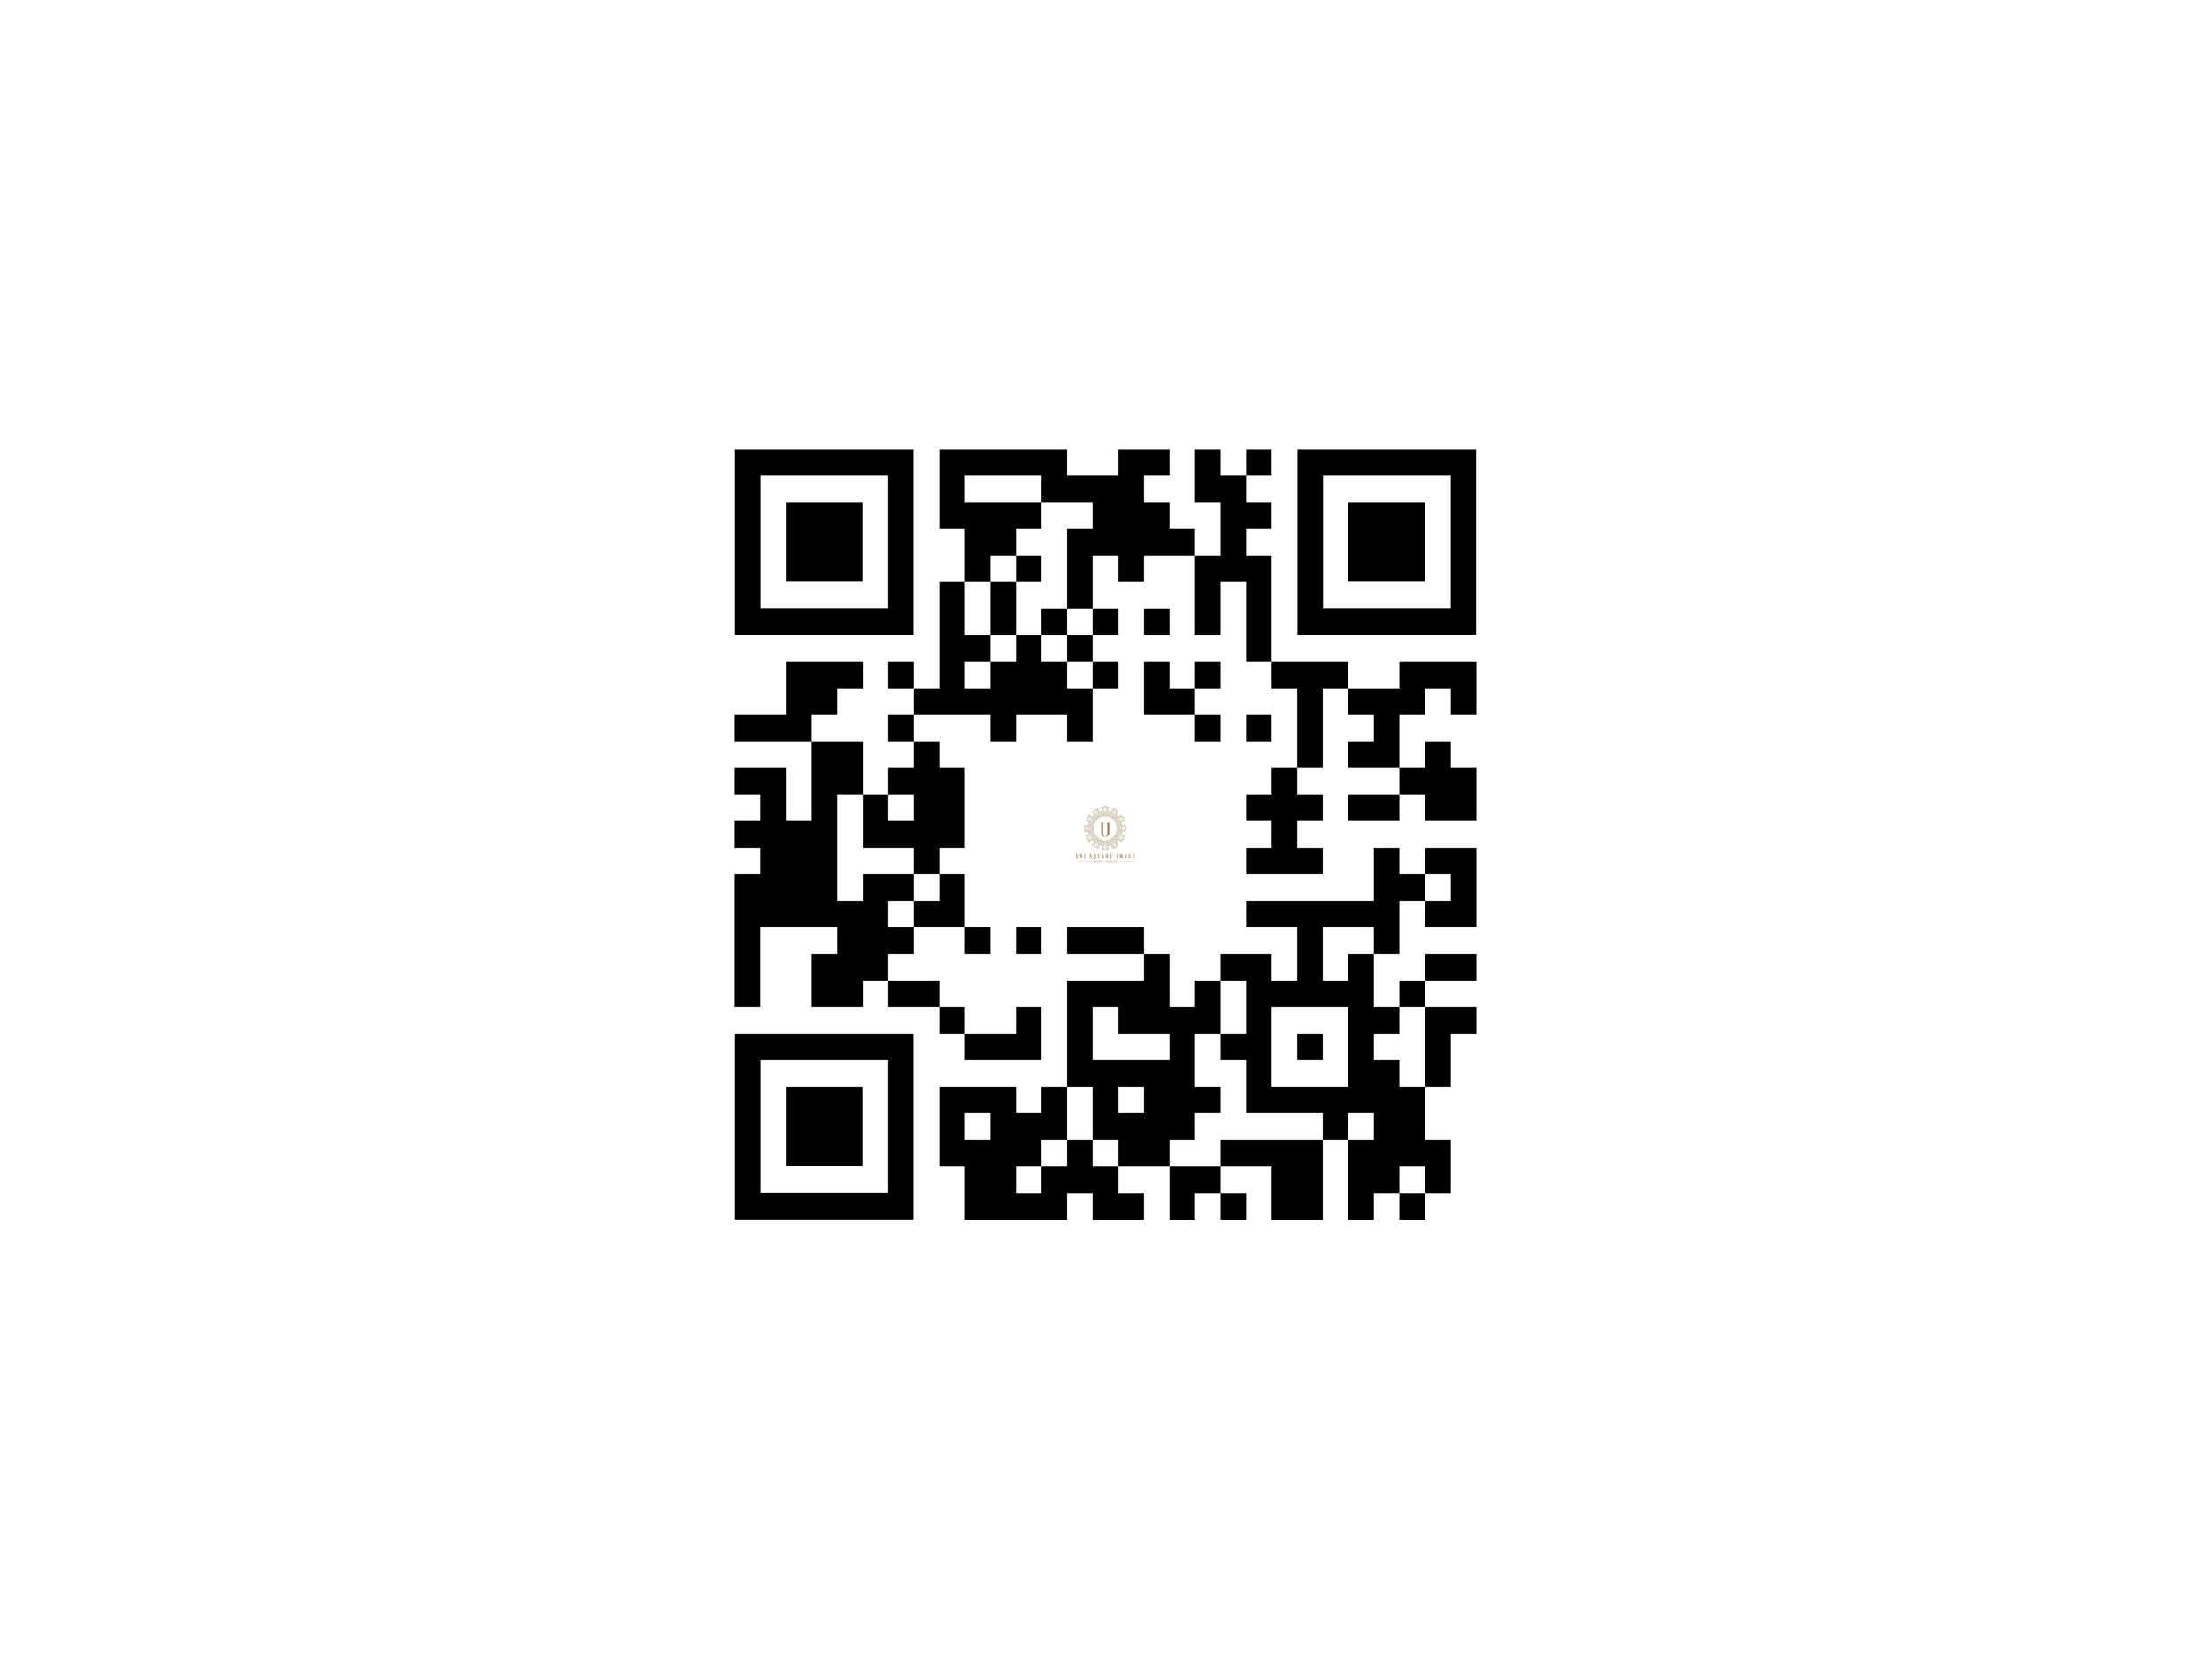 QR_Code_My_Social_Media_Pageresize.png